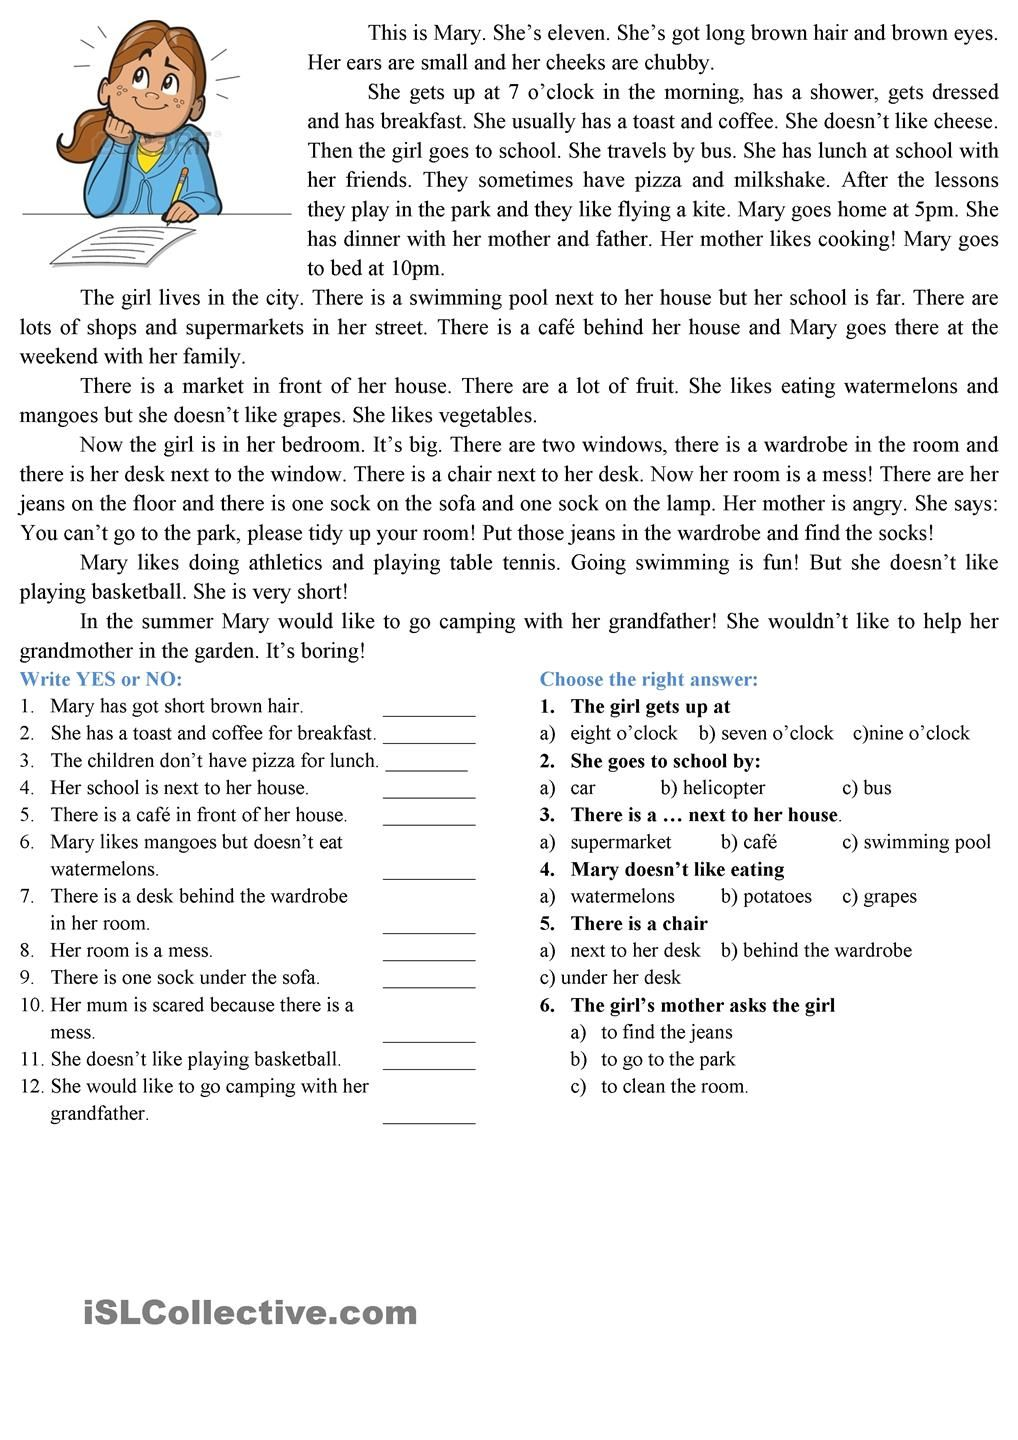 reading comprehension | Reading comprehension worksheets ...